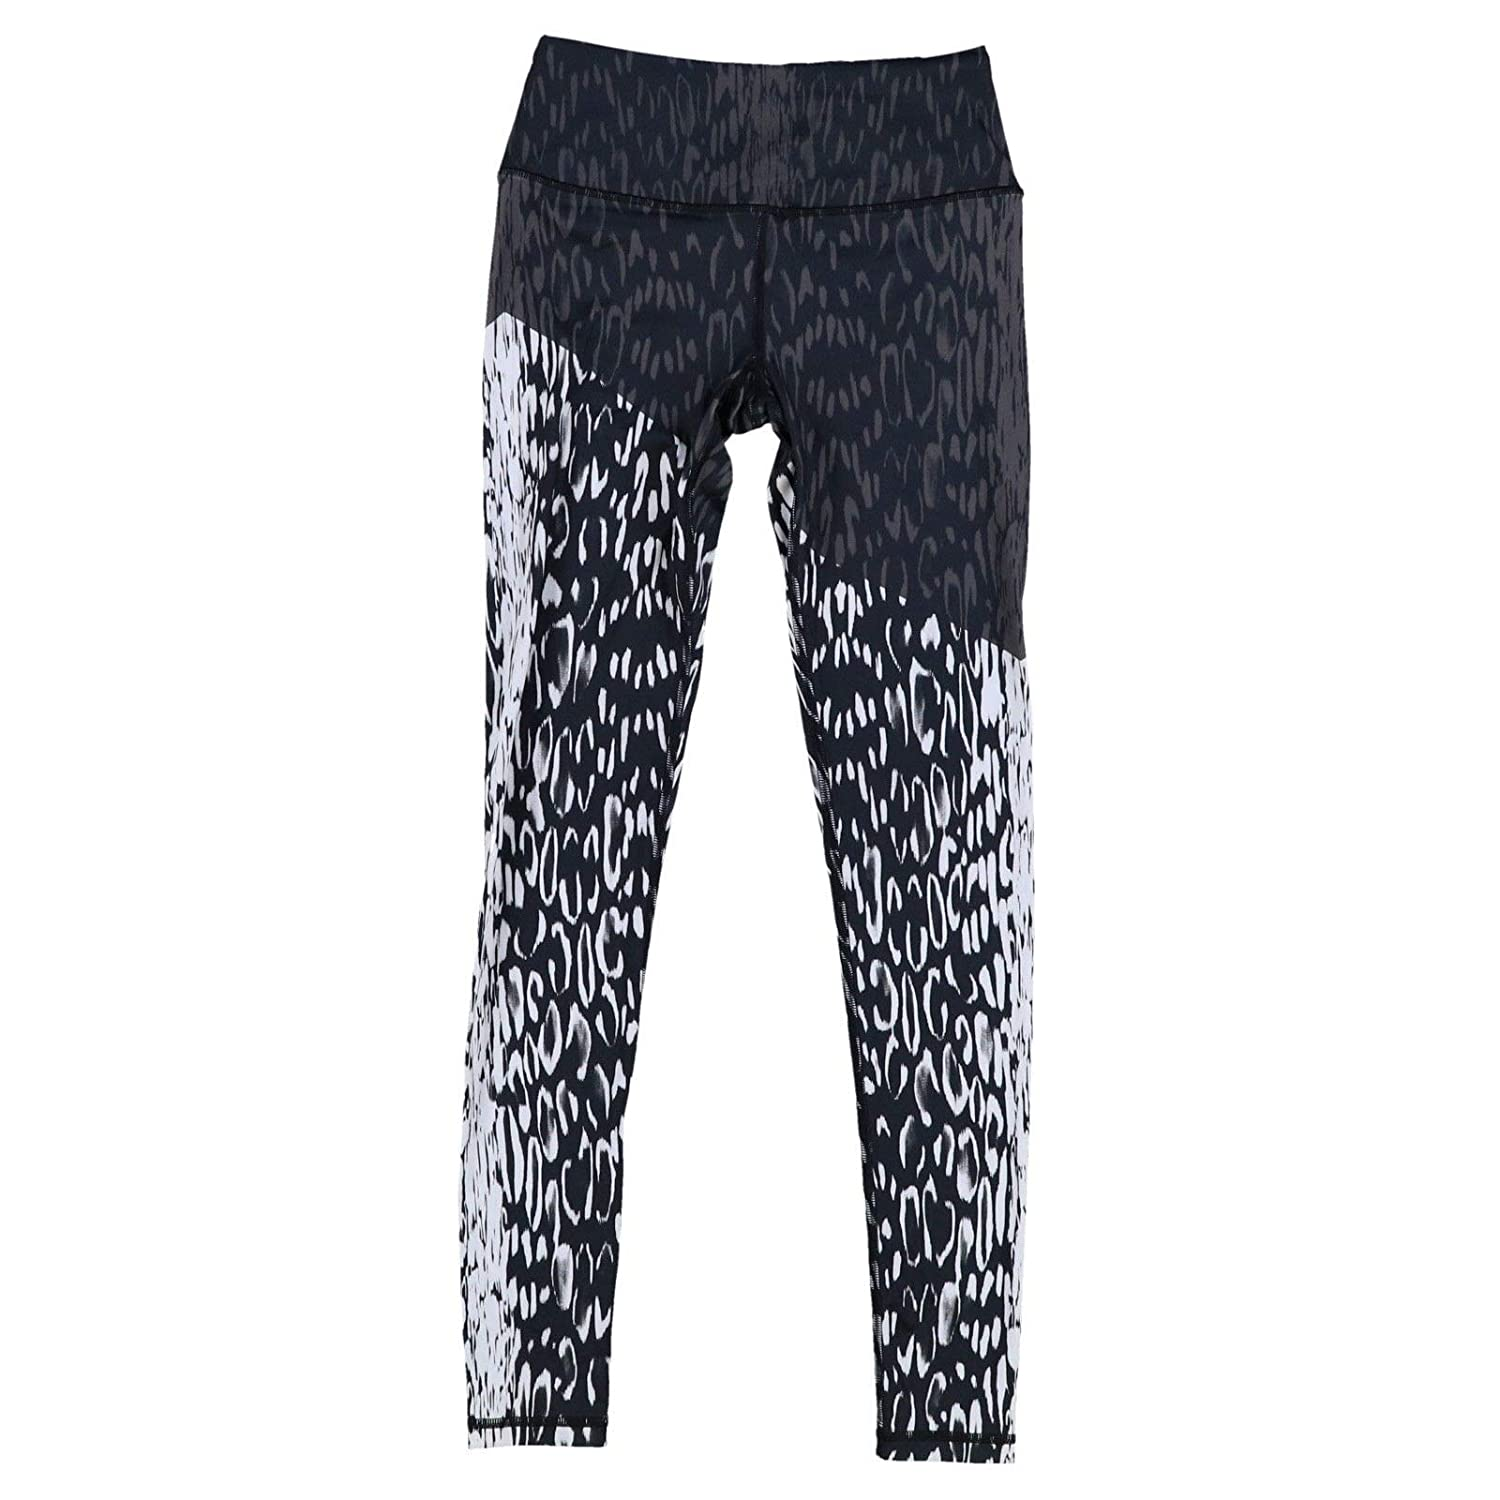 5c272c1f8f Amazon.com: Victoria's Secret Sport Knockout Athletic Legging Pants (XS,  Animal Print): Clothing